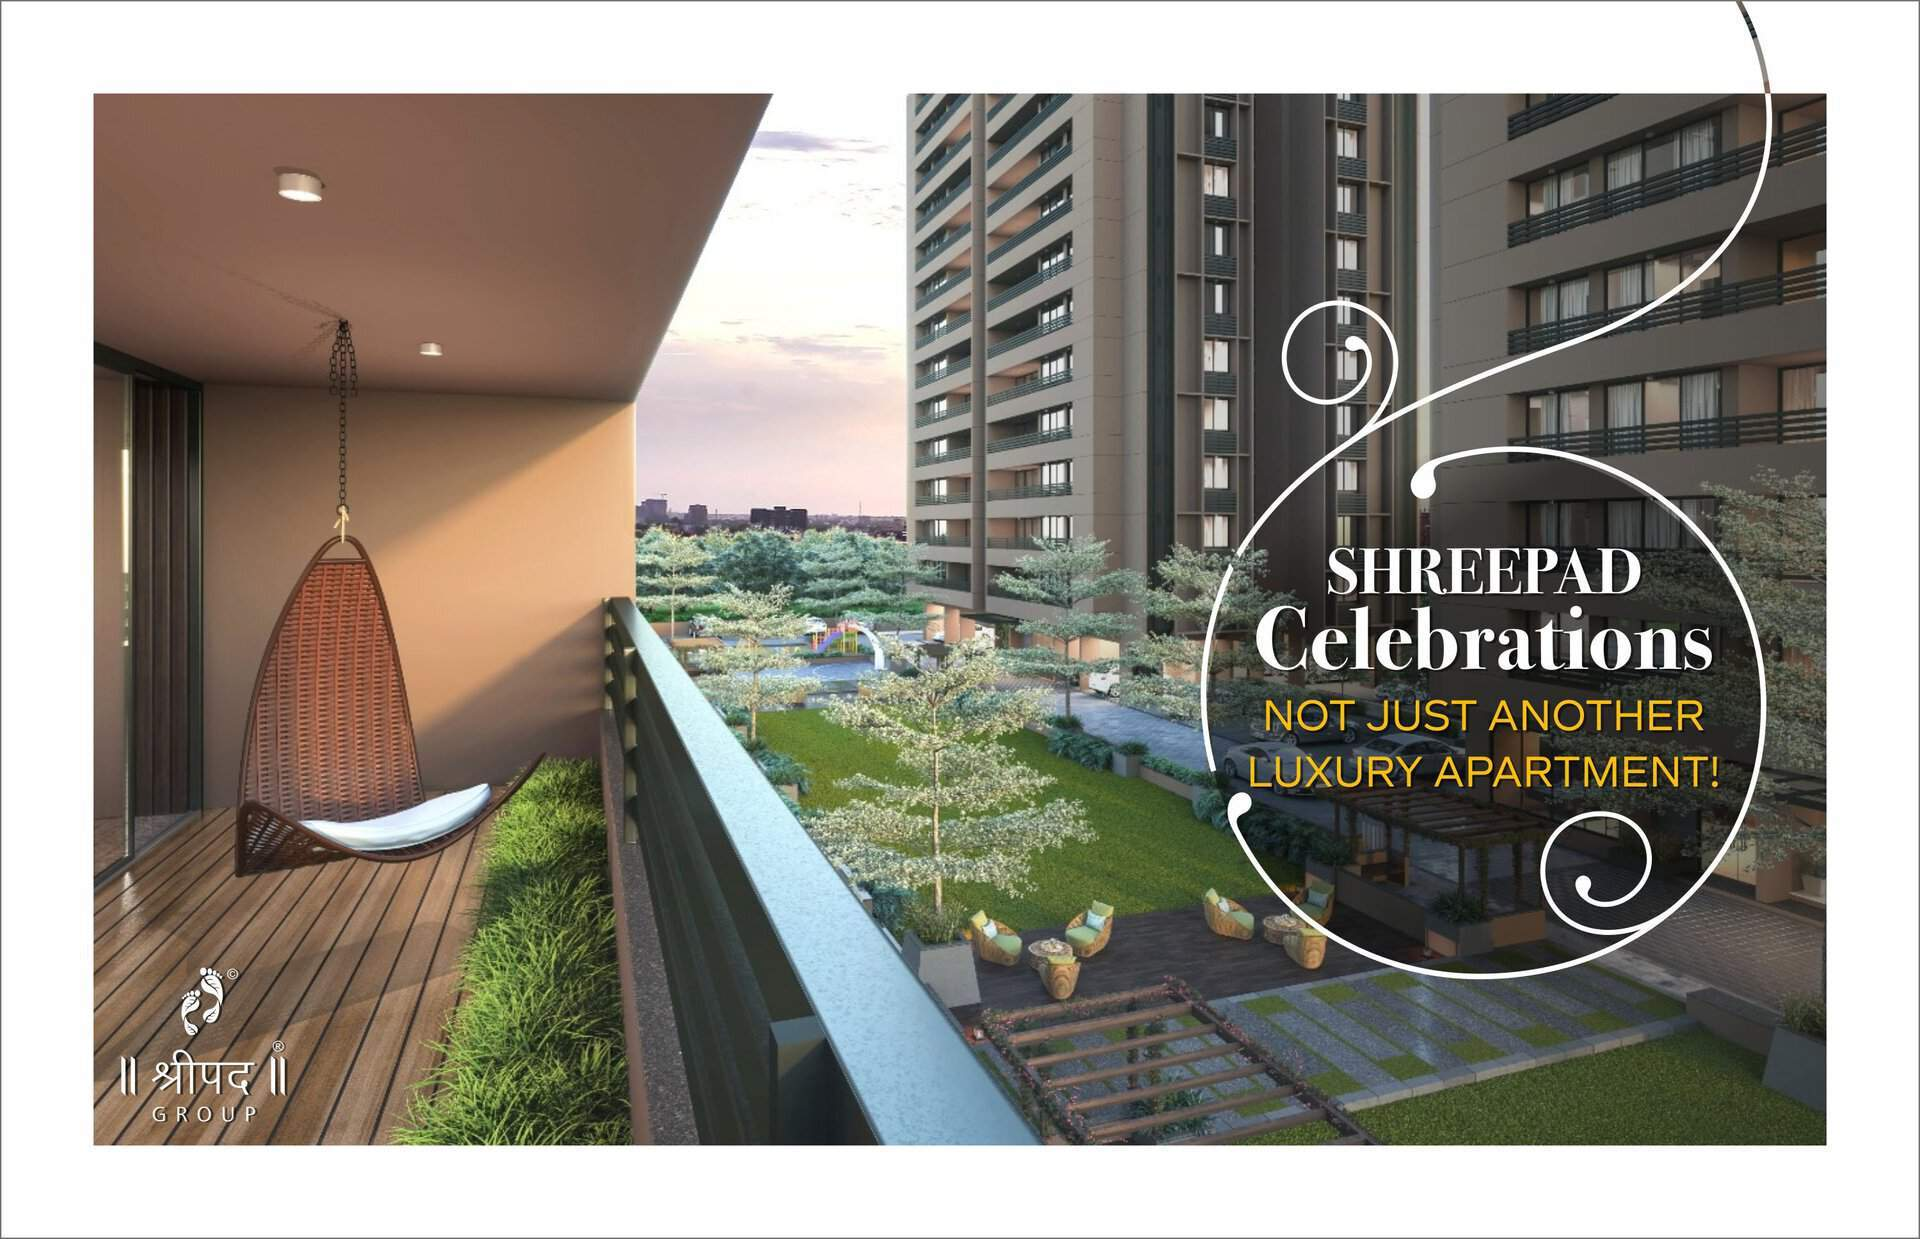 Shreepad Celebrations – Not just another Luxury Apartment!